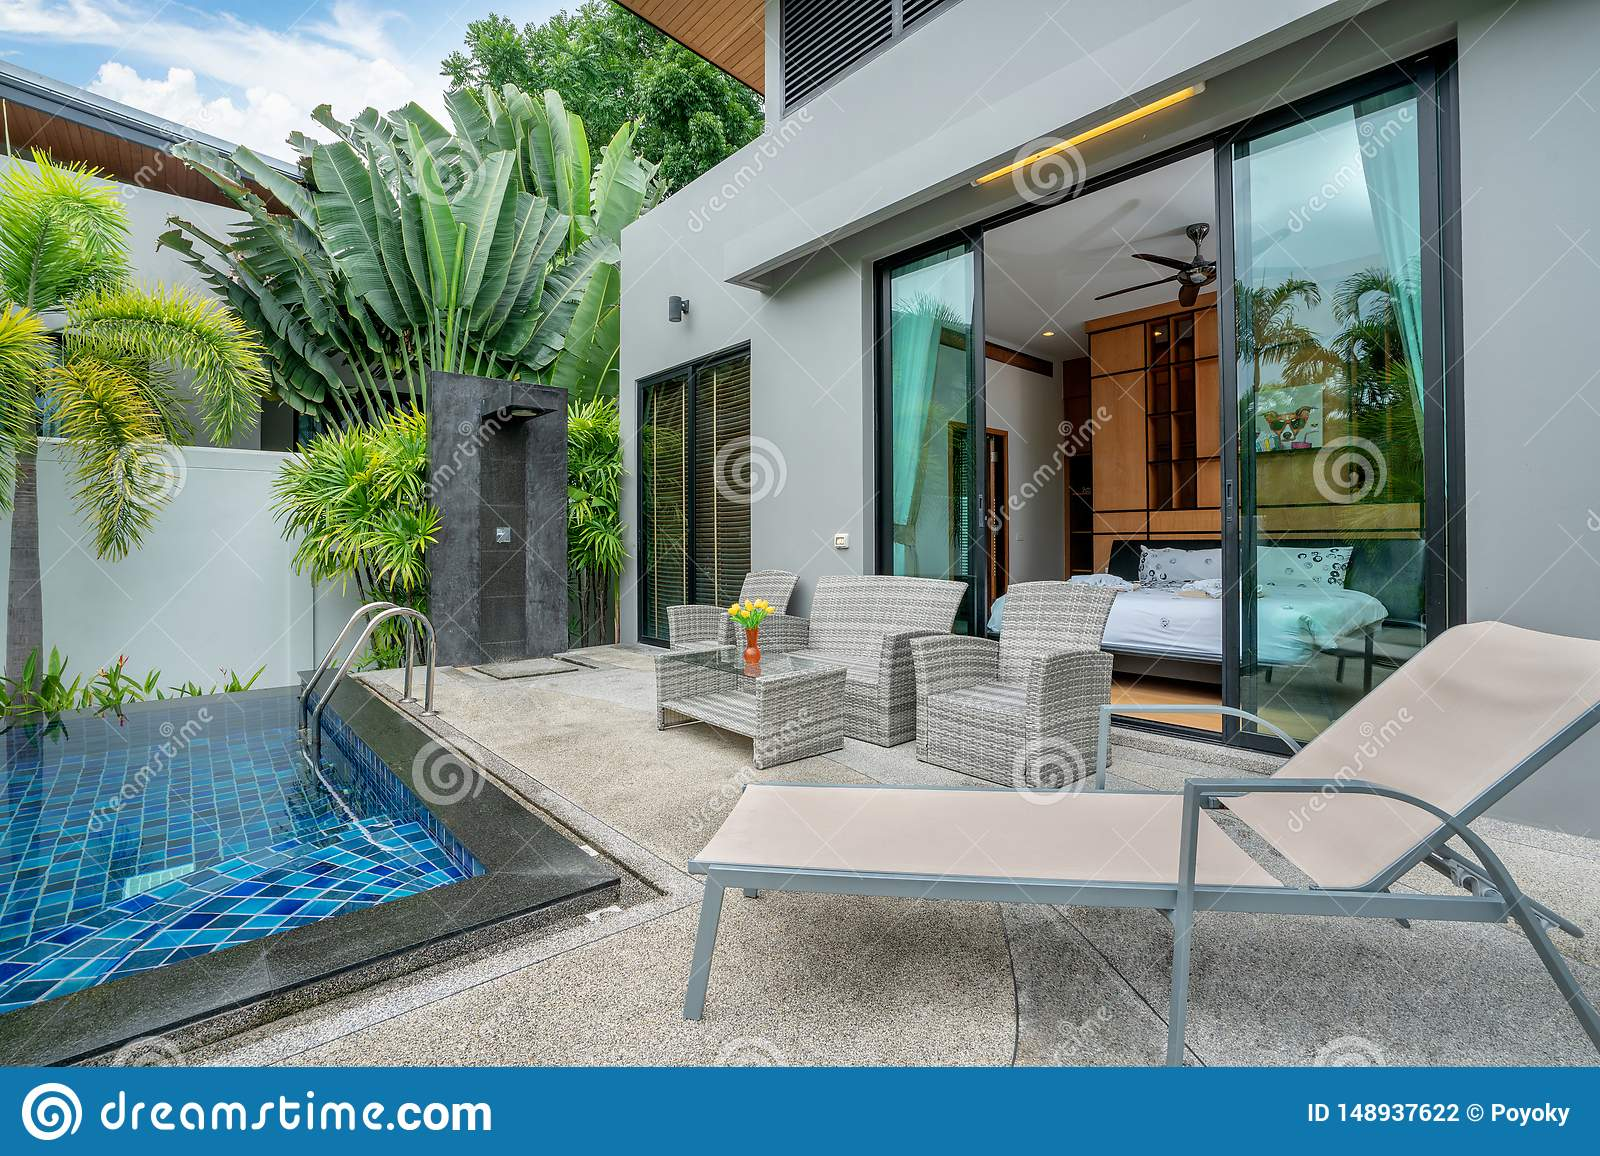 Home Or House Building Exterior And Interior Design Showing Tropical Pool Villa With Green Garden Stock Photo Image Of Beautiful Living 148937622